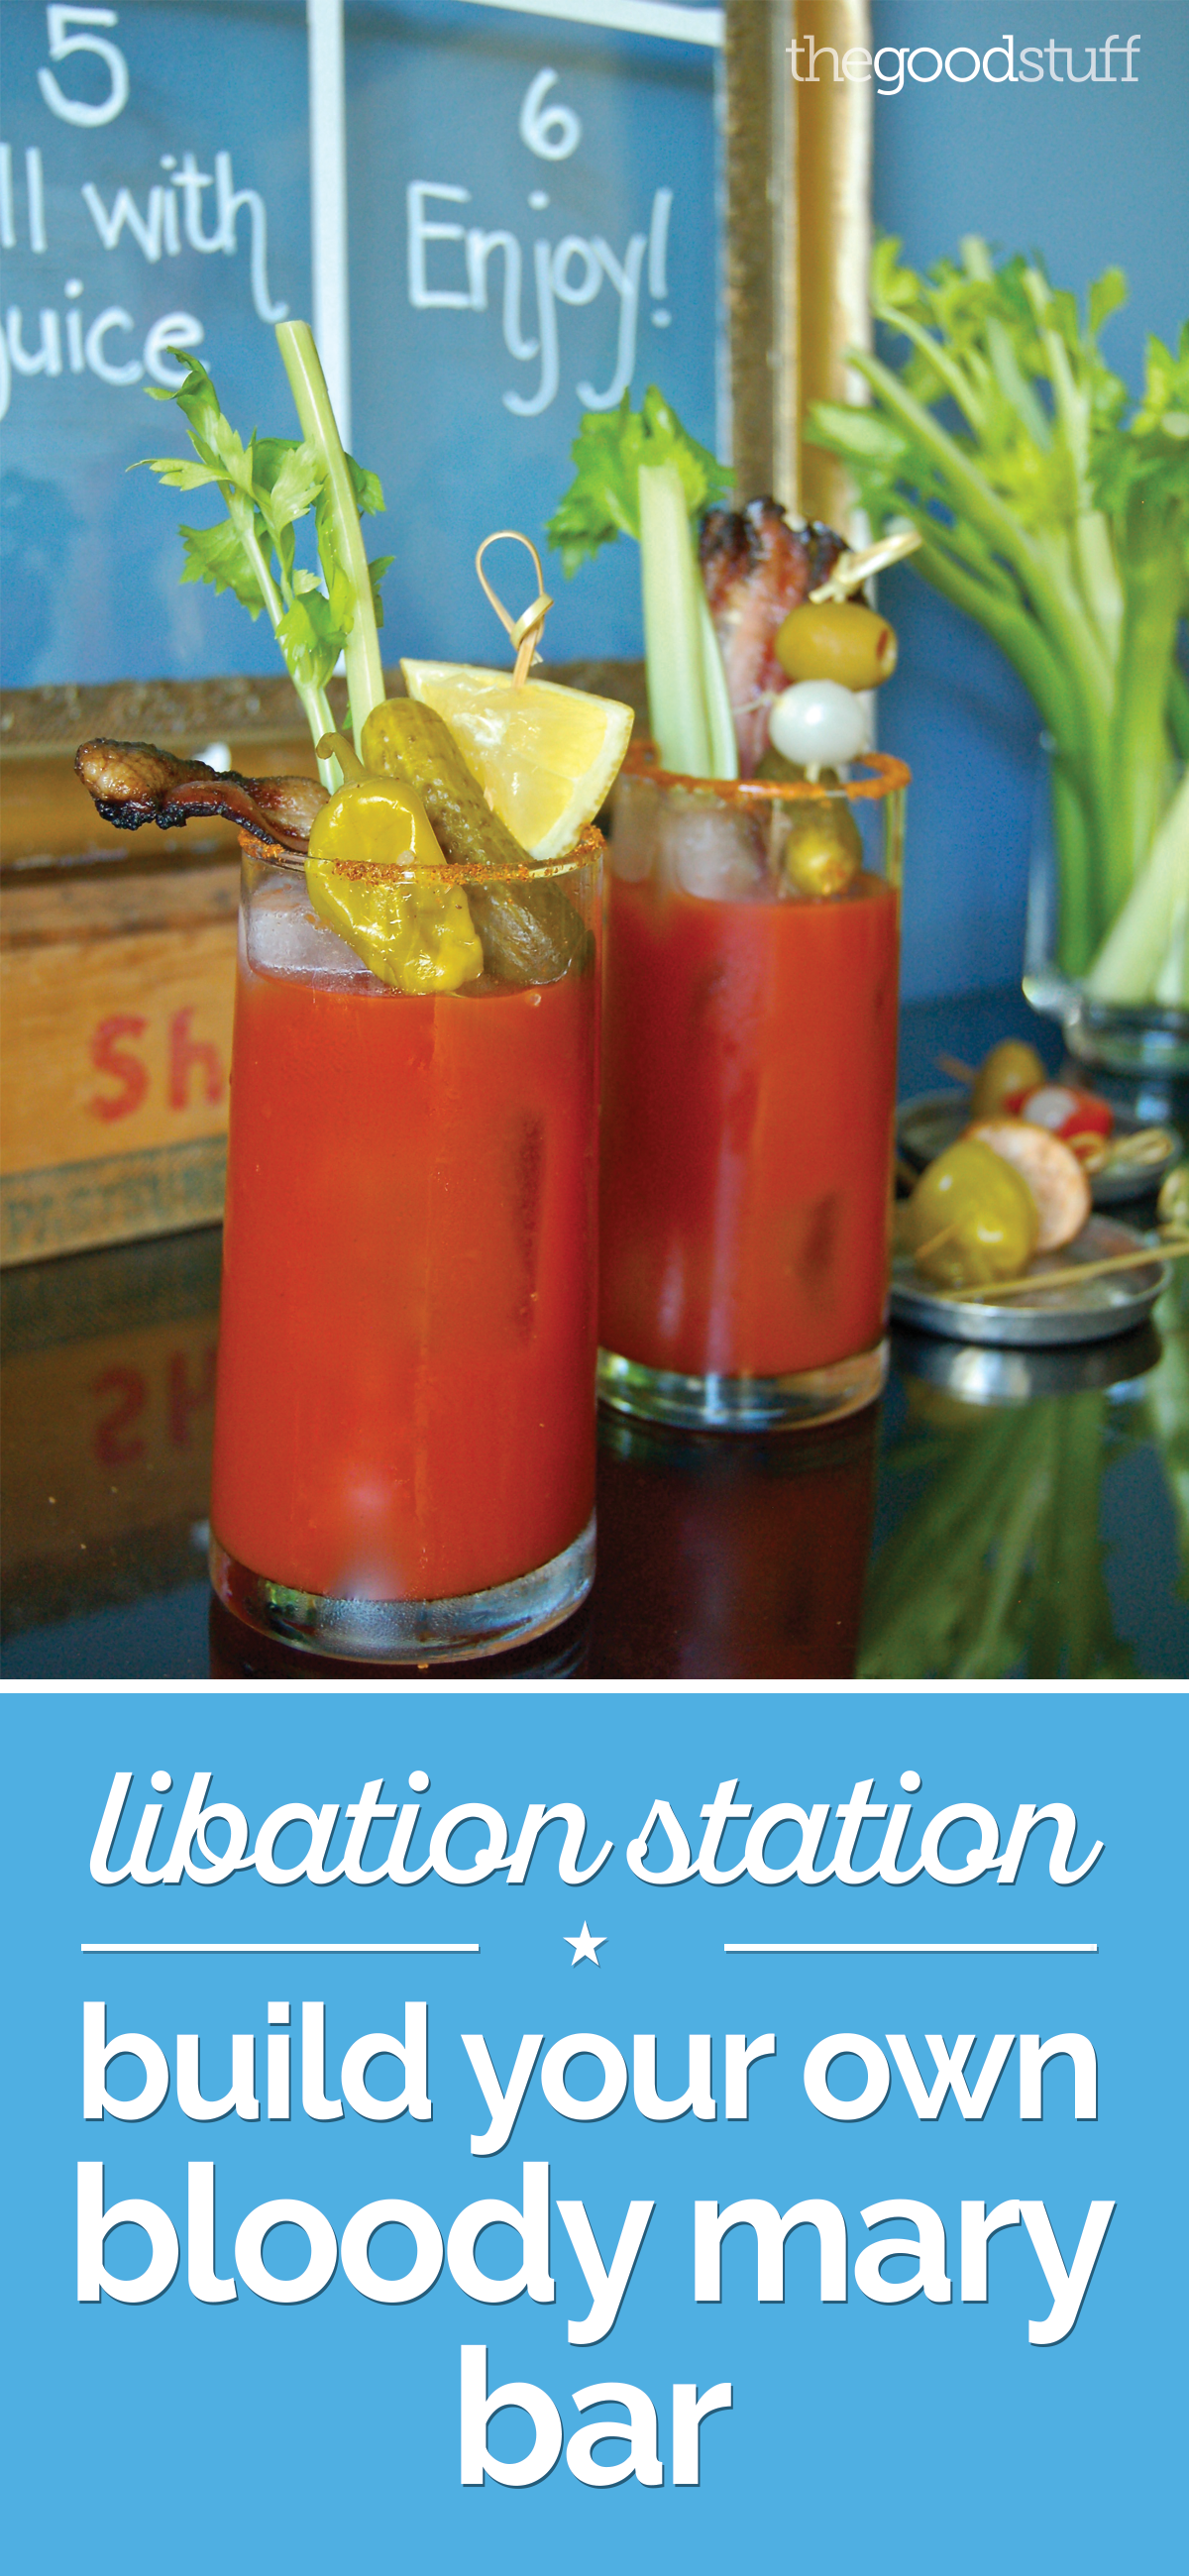 Libation Station: Build Your Own Bloody Mary Bar | thegoodstuff